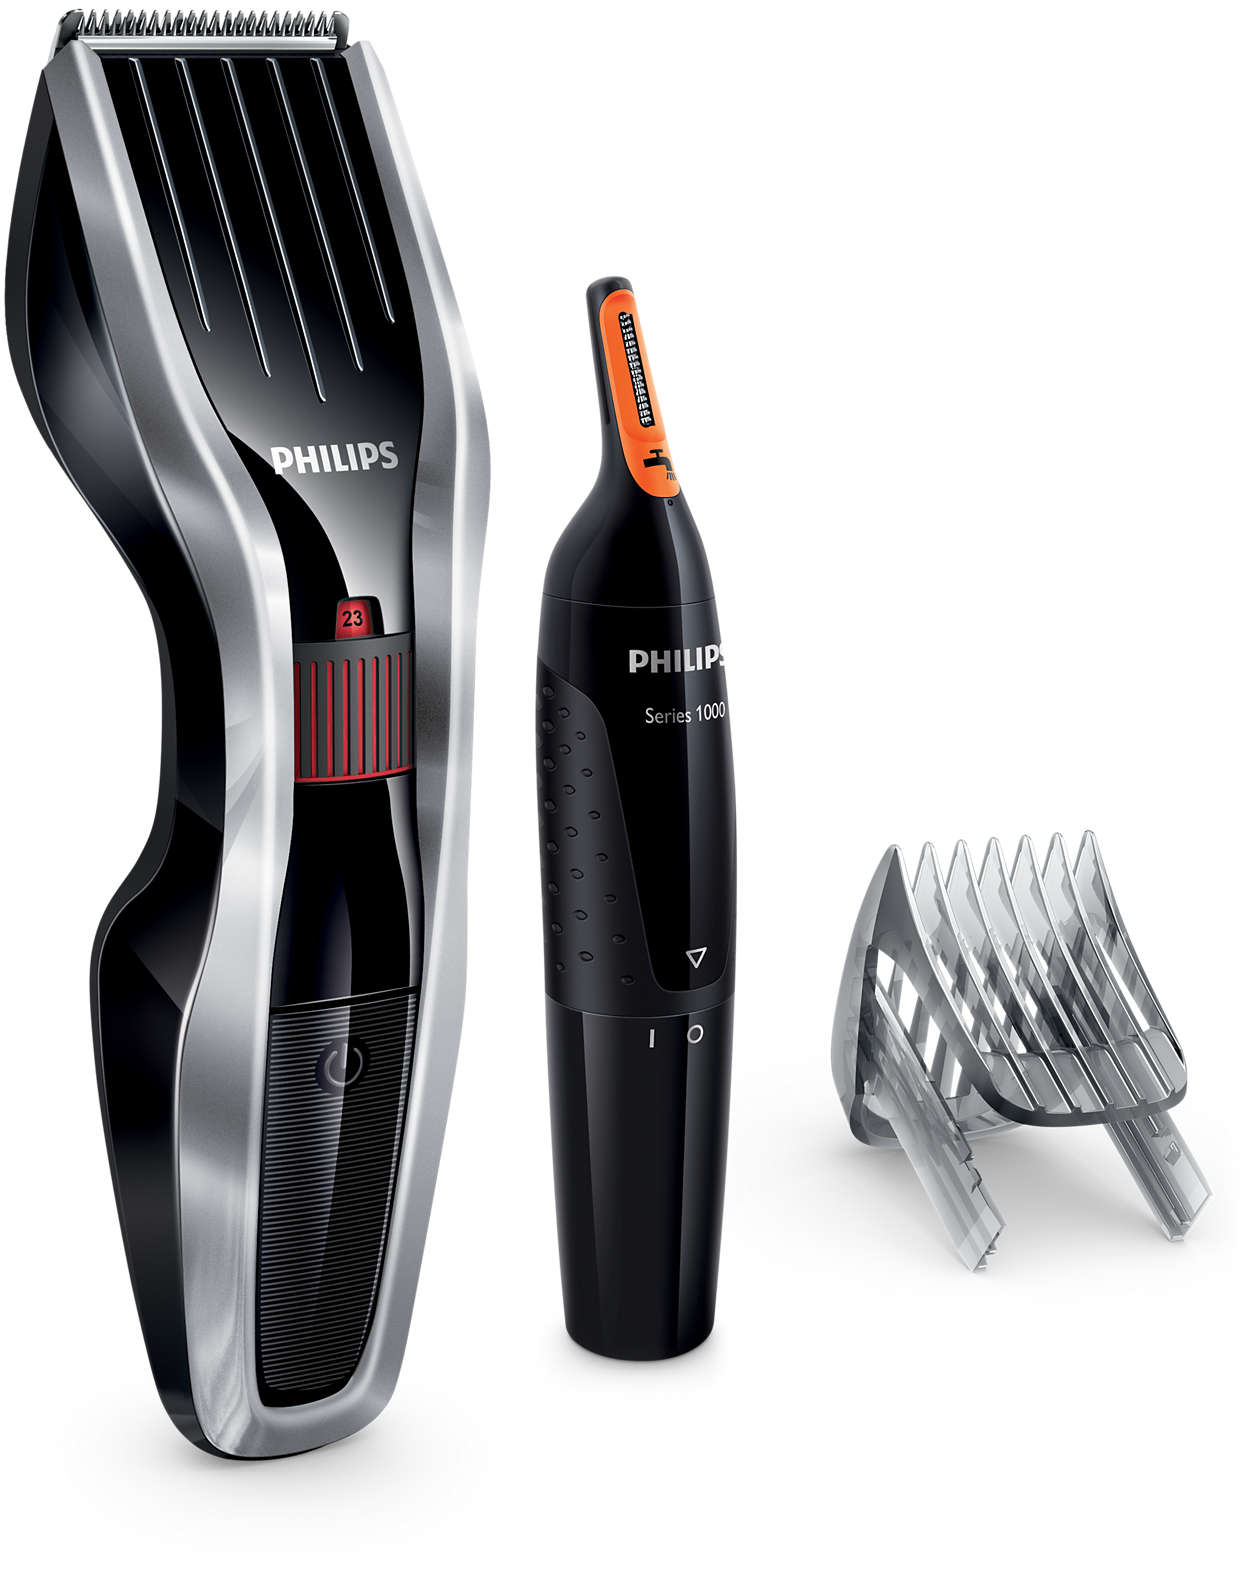 HAIRCLIPPER i 5000-serien – klipper dubbelt så fort*